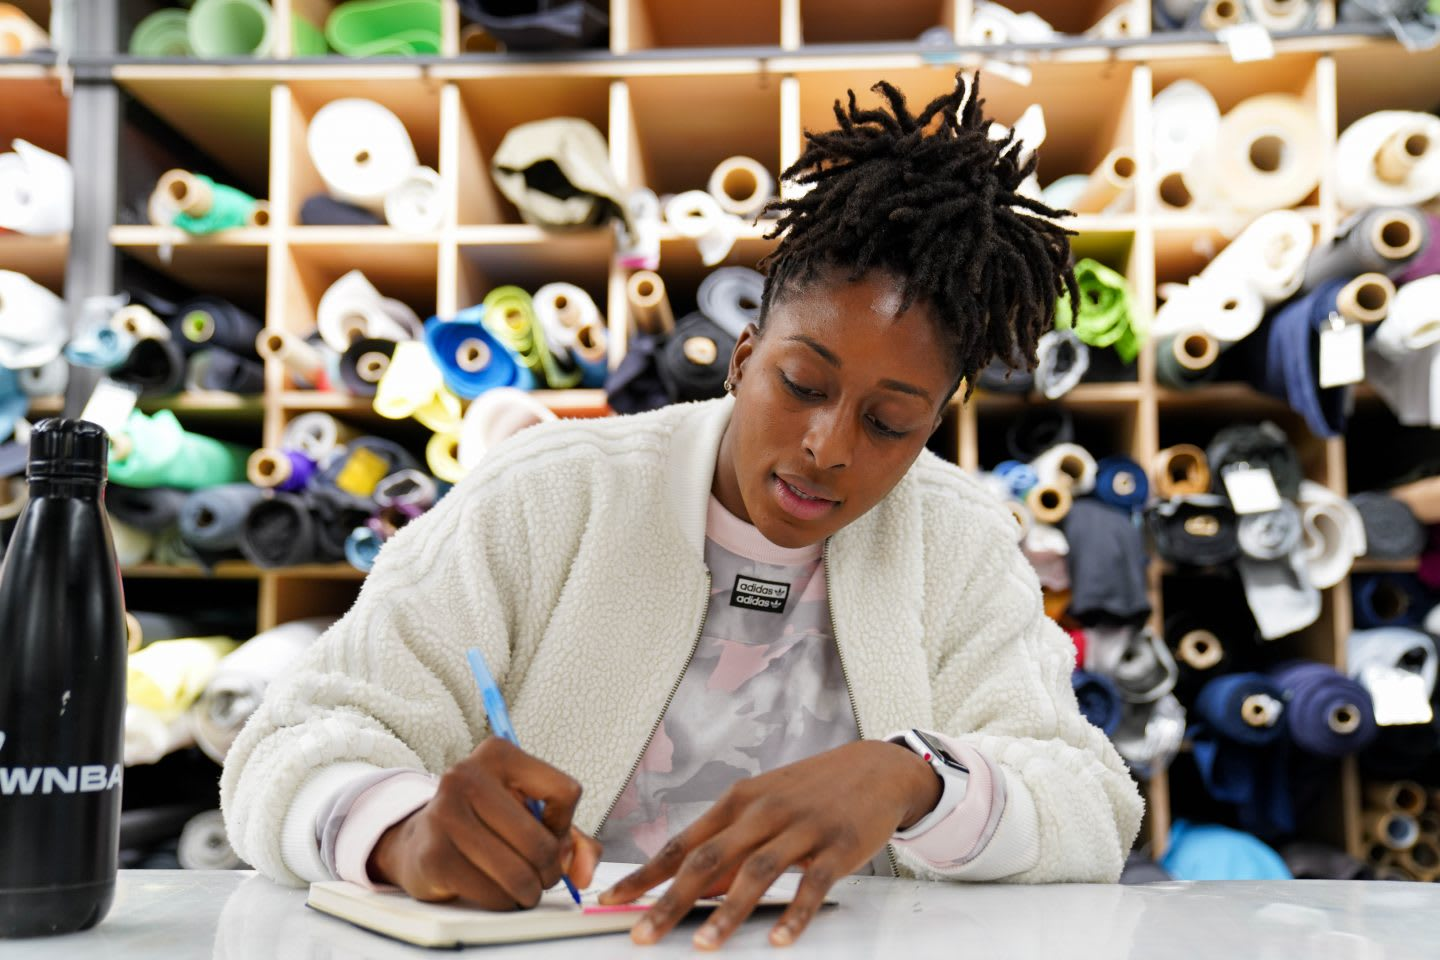 WNBA player Nneka Ogwumike writing ideas in notebook, adidas, office, creativity, work, ideas, GamePlan A